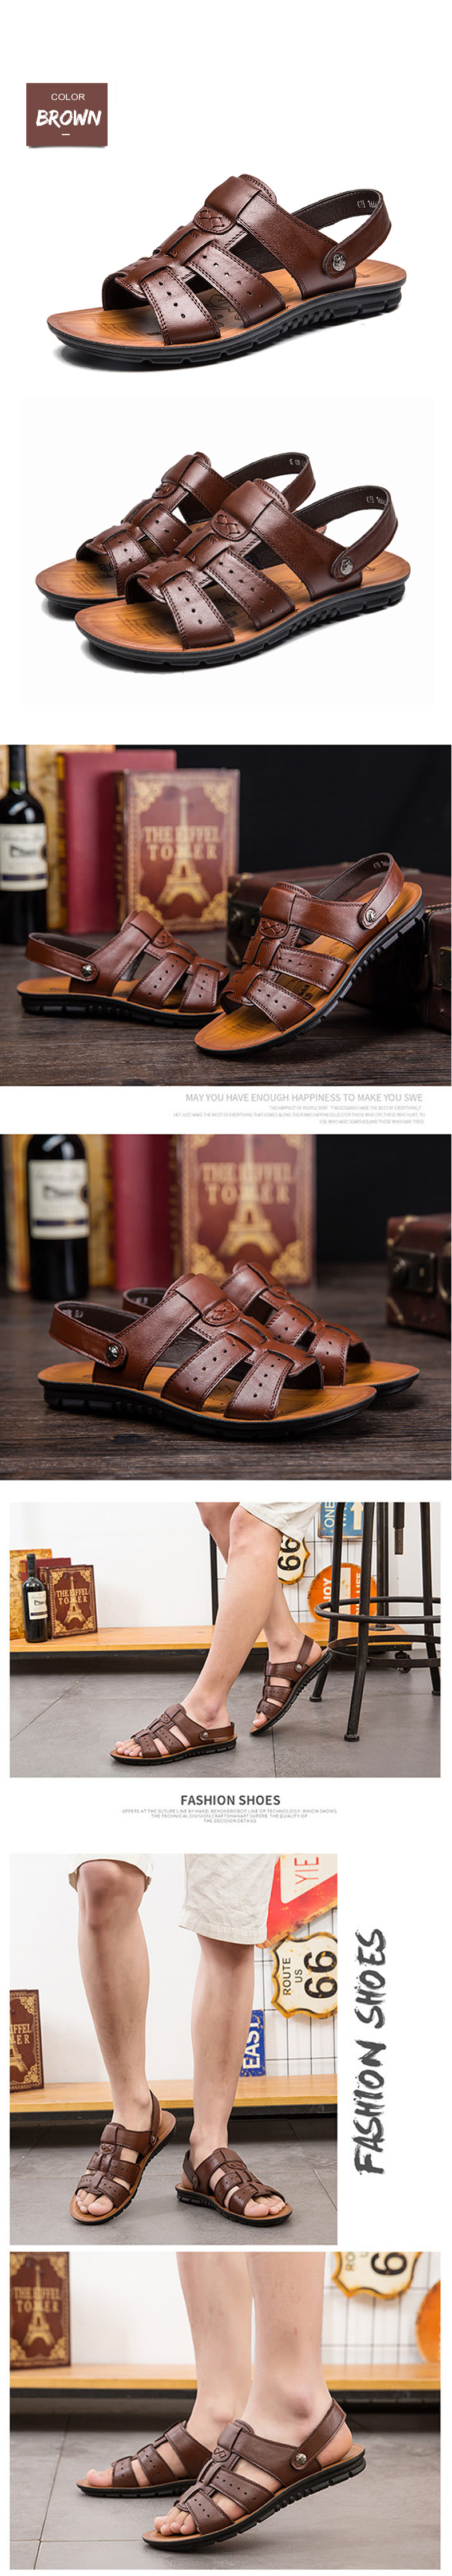 HTB1yZXbXkomBKNjSZFqq6xtqVXaU - Xammep Men Sandals Genuine Split Leather Men Beach Shoes Brand Men Casual Shoes Men Slippers Sneakers Summer Shoes Flip Flops